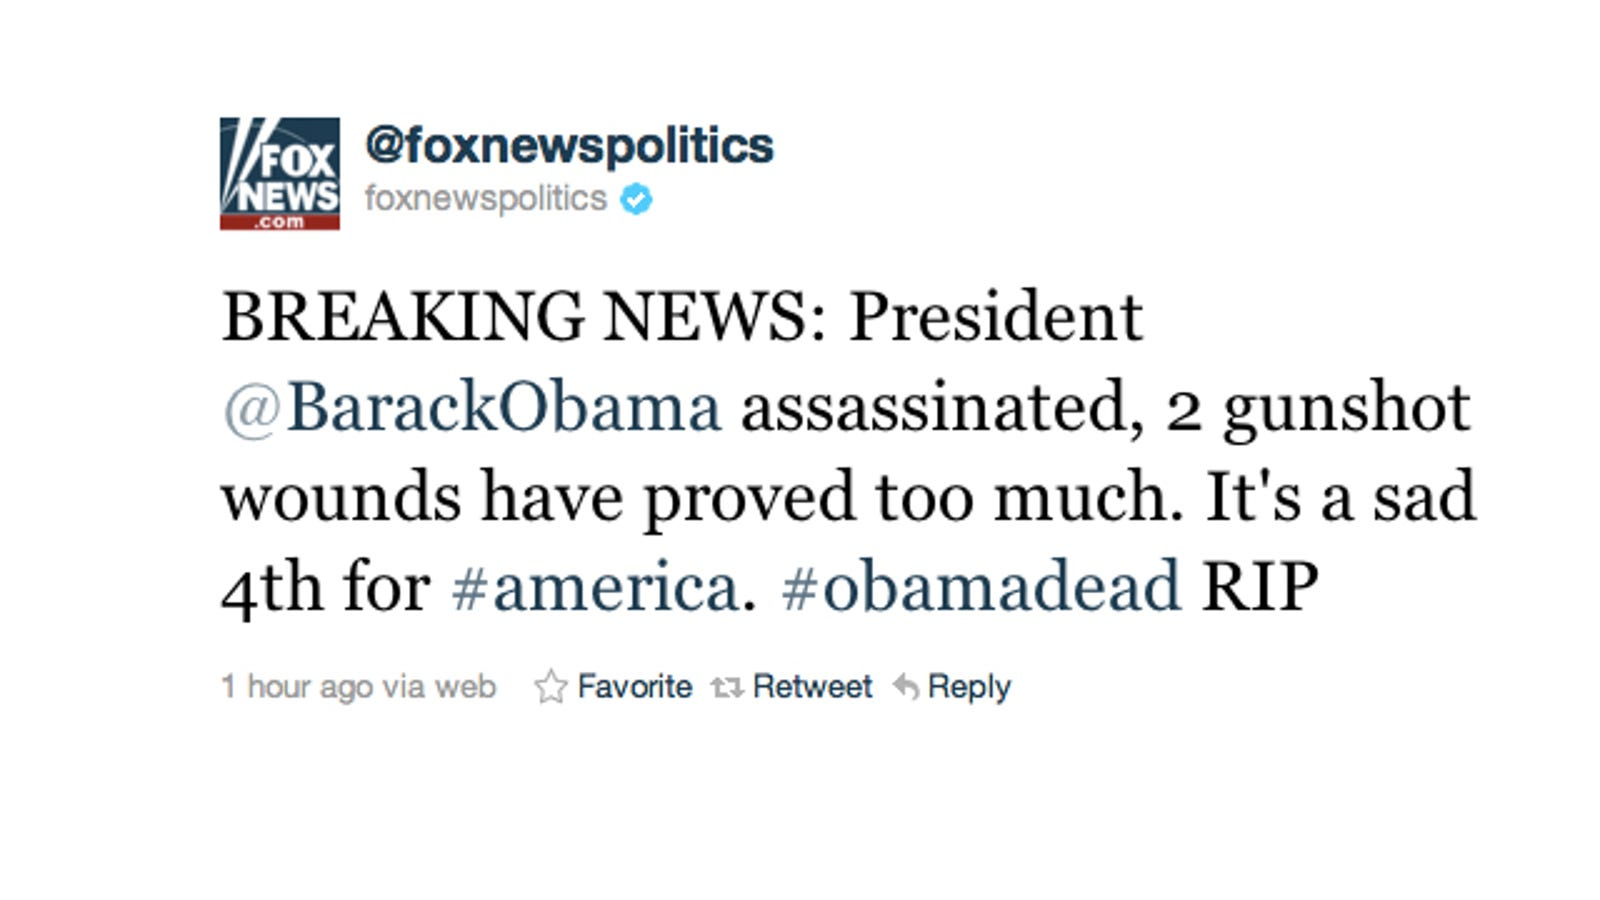 Fox News' Twitter Account Hacked, Claims Barack Obama Is Dead